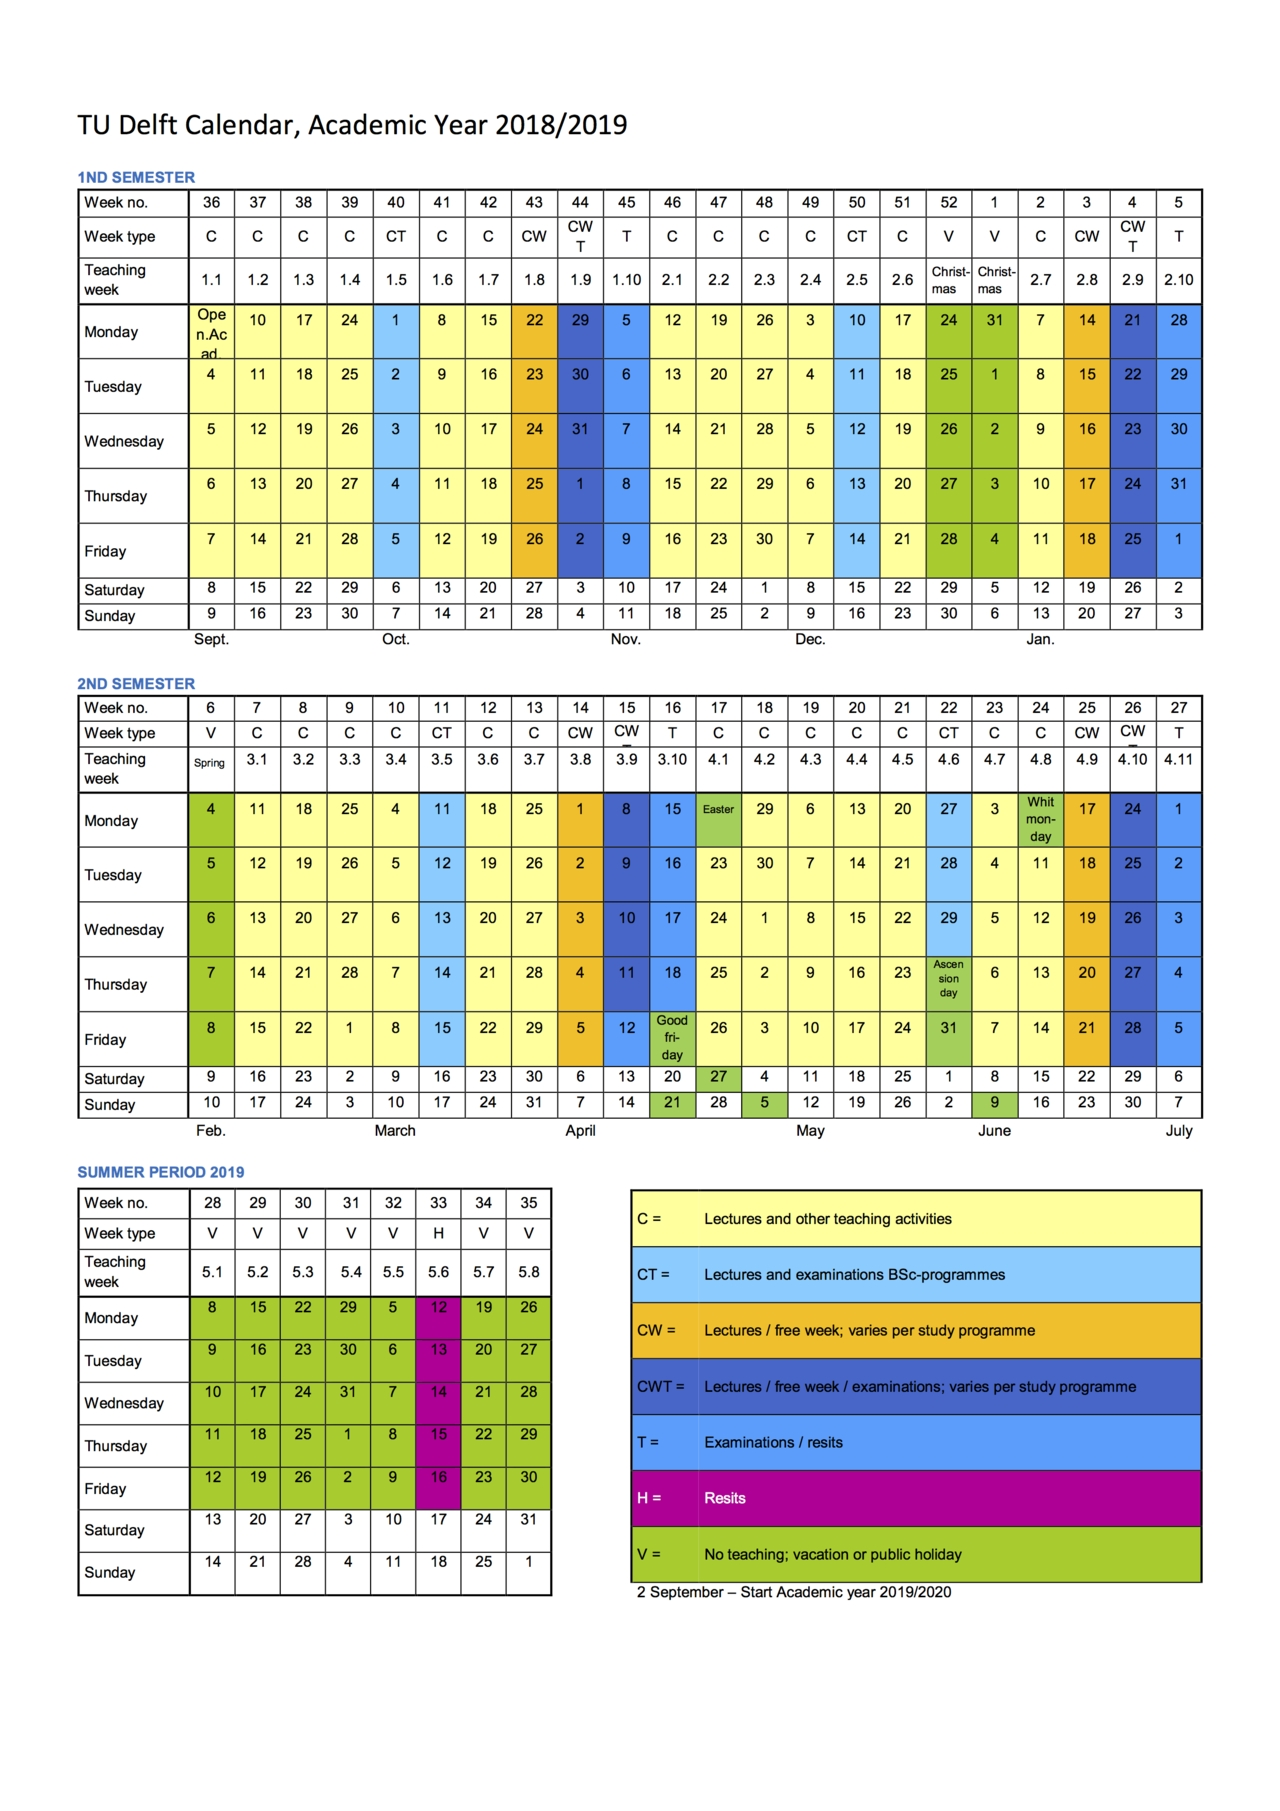 Academic Calendar with regard to U Of M Calander 2019-2020